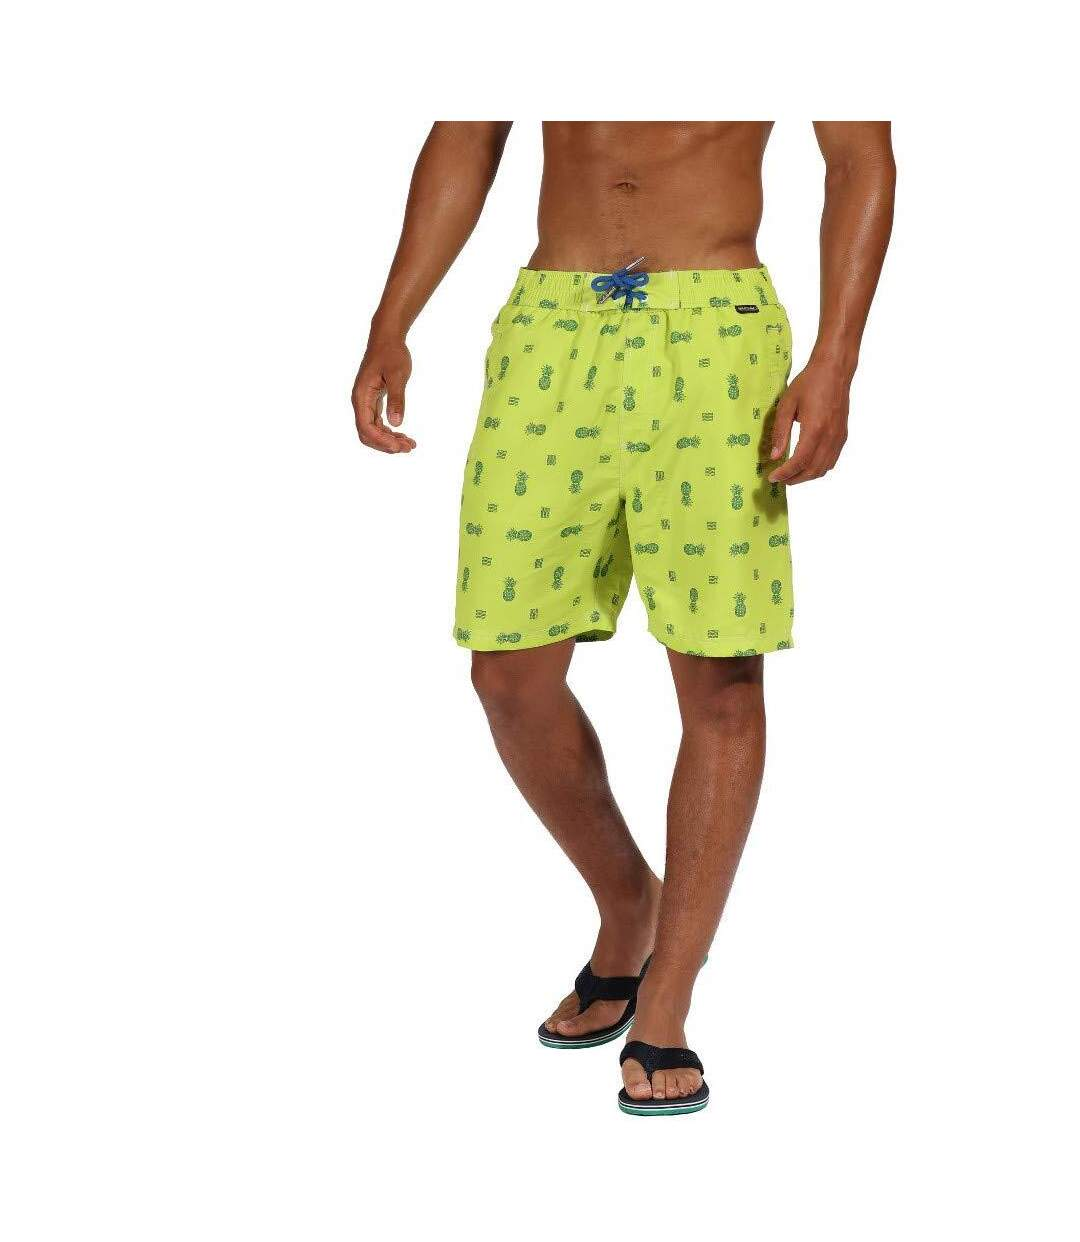 Regatta Mens Hadden II Quick Drying Board Shorts (Lime Punch Pineapple) - UTRG4175